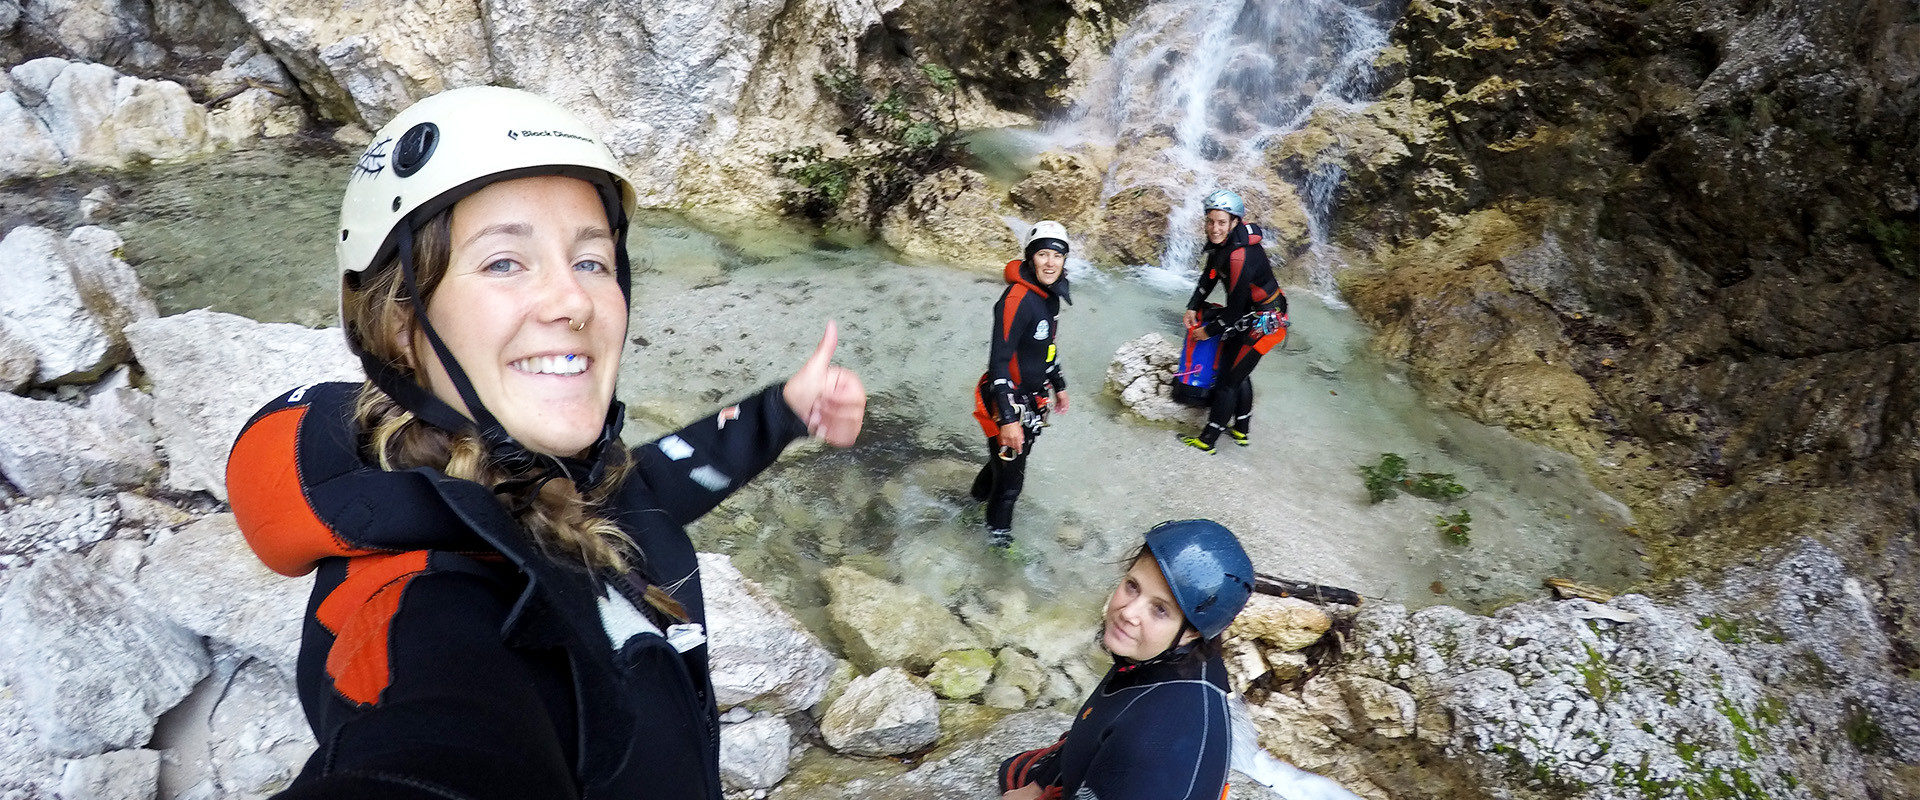 Canyoning in Friaul